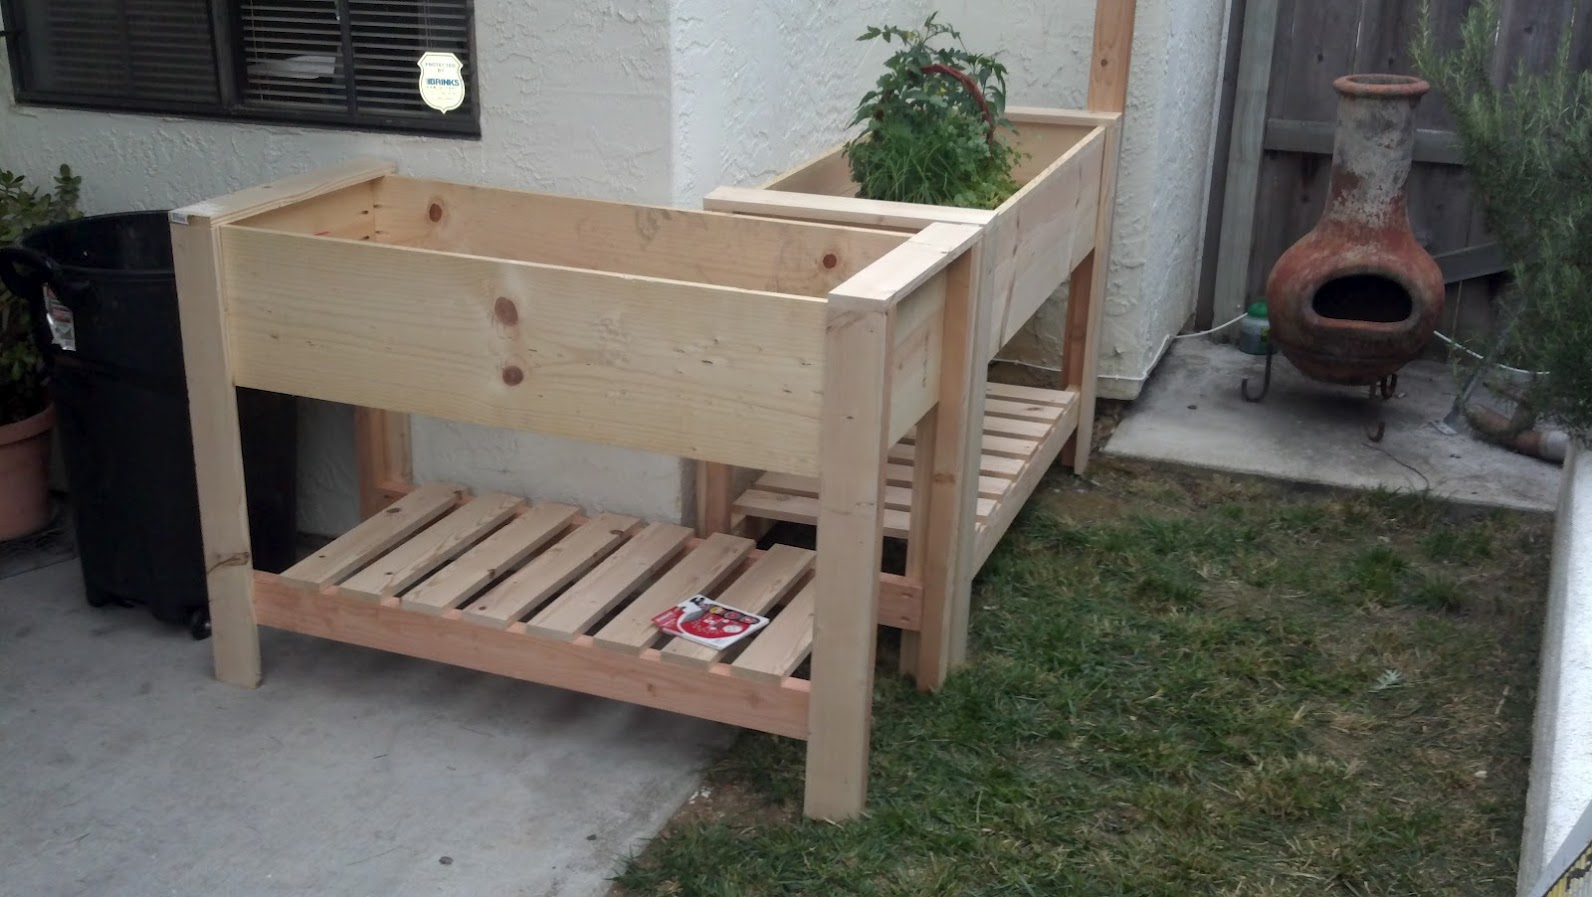 Design Backyard With Raised Planter Box | Royals Courage on edible garden ideas and designs, raised bed planters using tires, raised brick flower bed designs, round raised garden beds designs, raised garden planters outdoor, raised bed furniture designs, raised backyard vegetable garden ideas, raised bed trellis designs, raised bed gardening designs, vegetable garden box designs, beautiful landscape flower beds and designs,